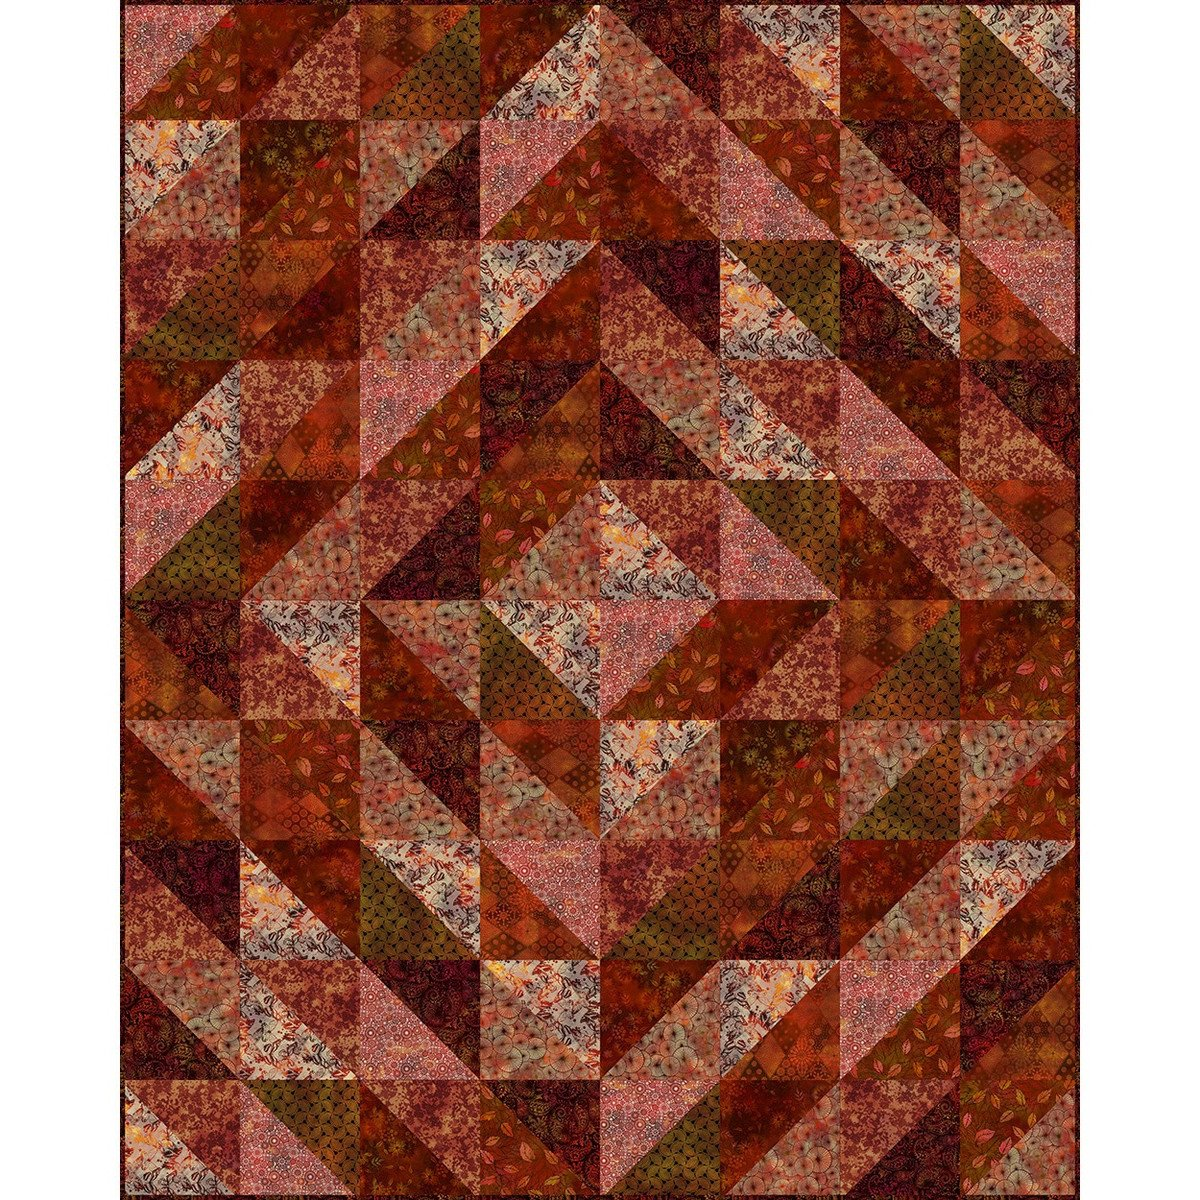 Seasons Quilt Kit